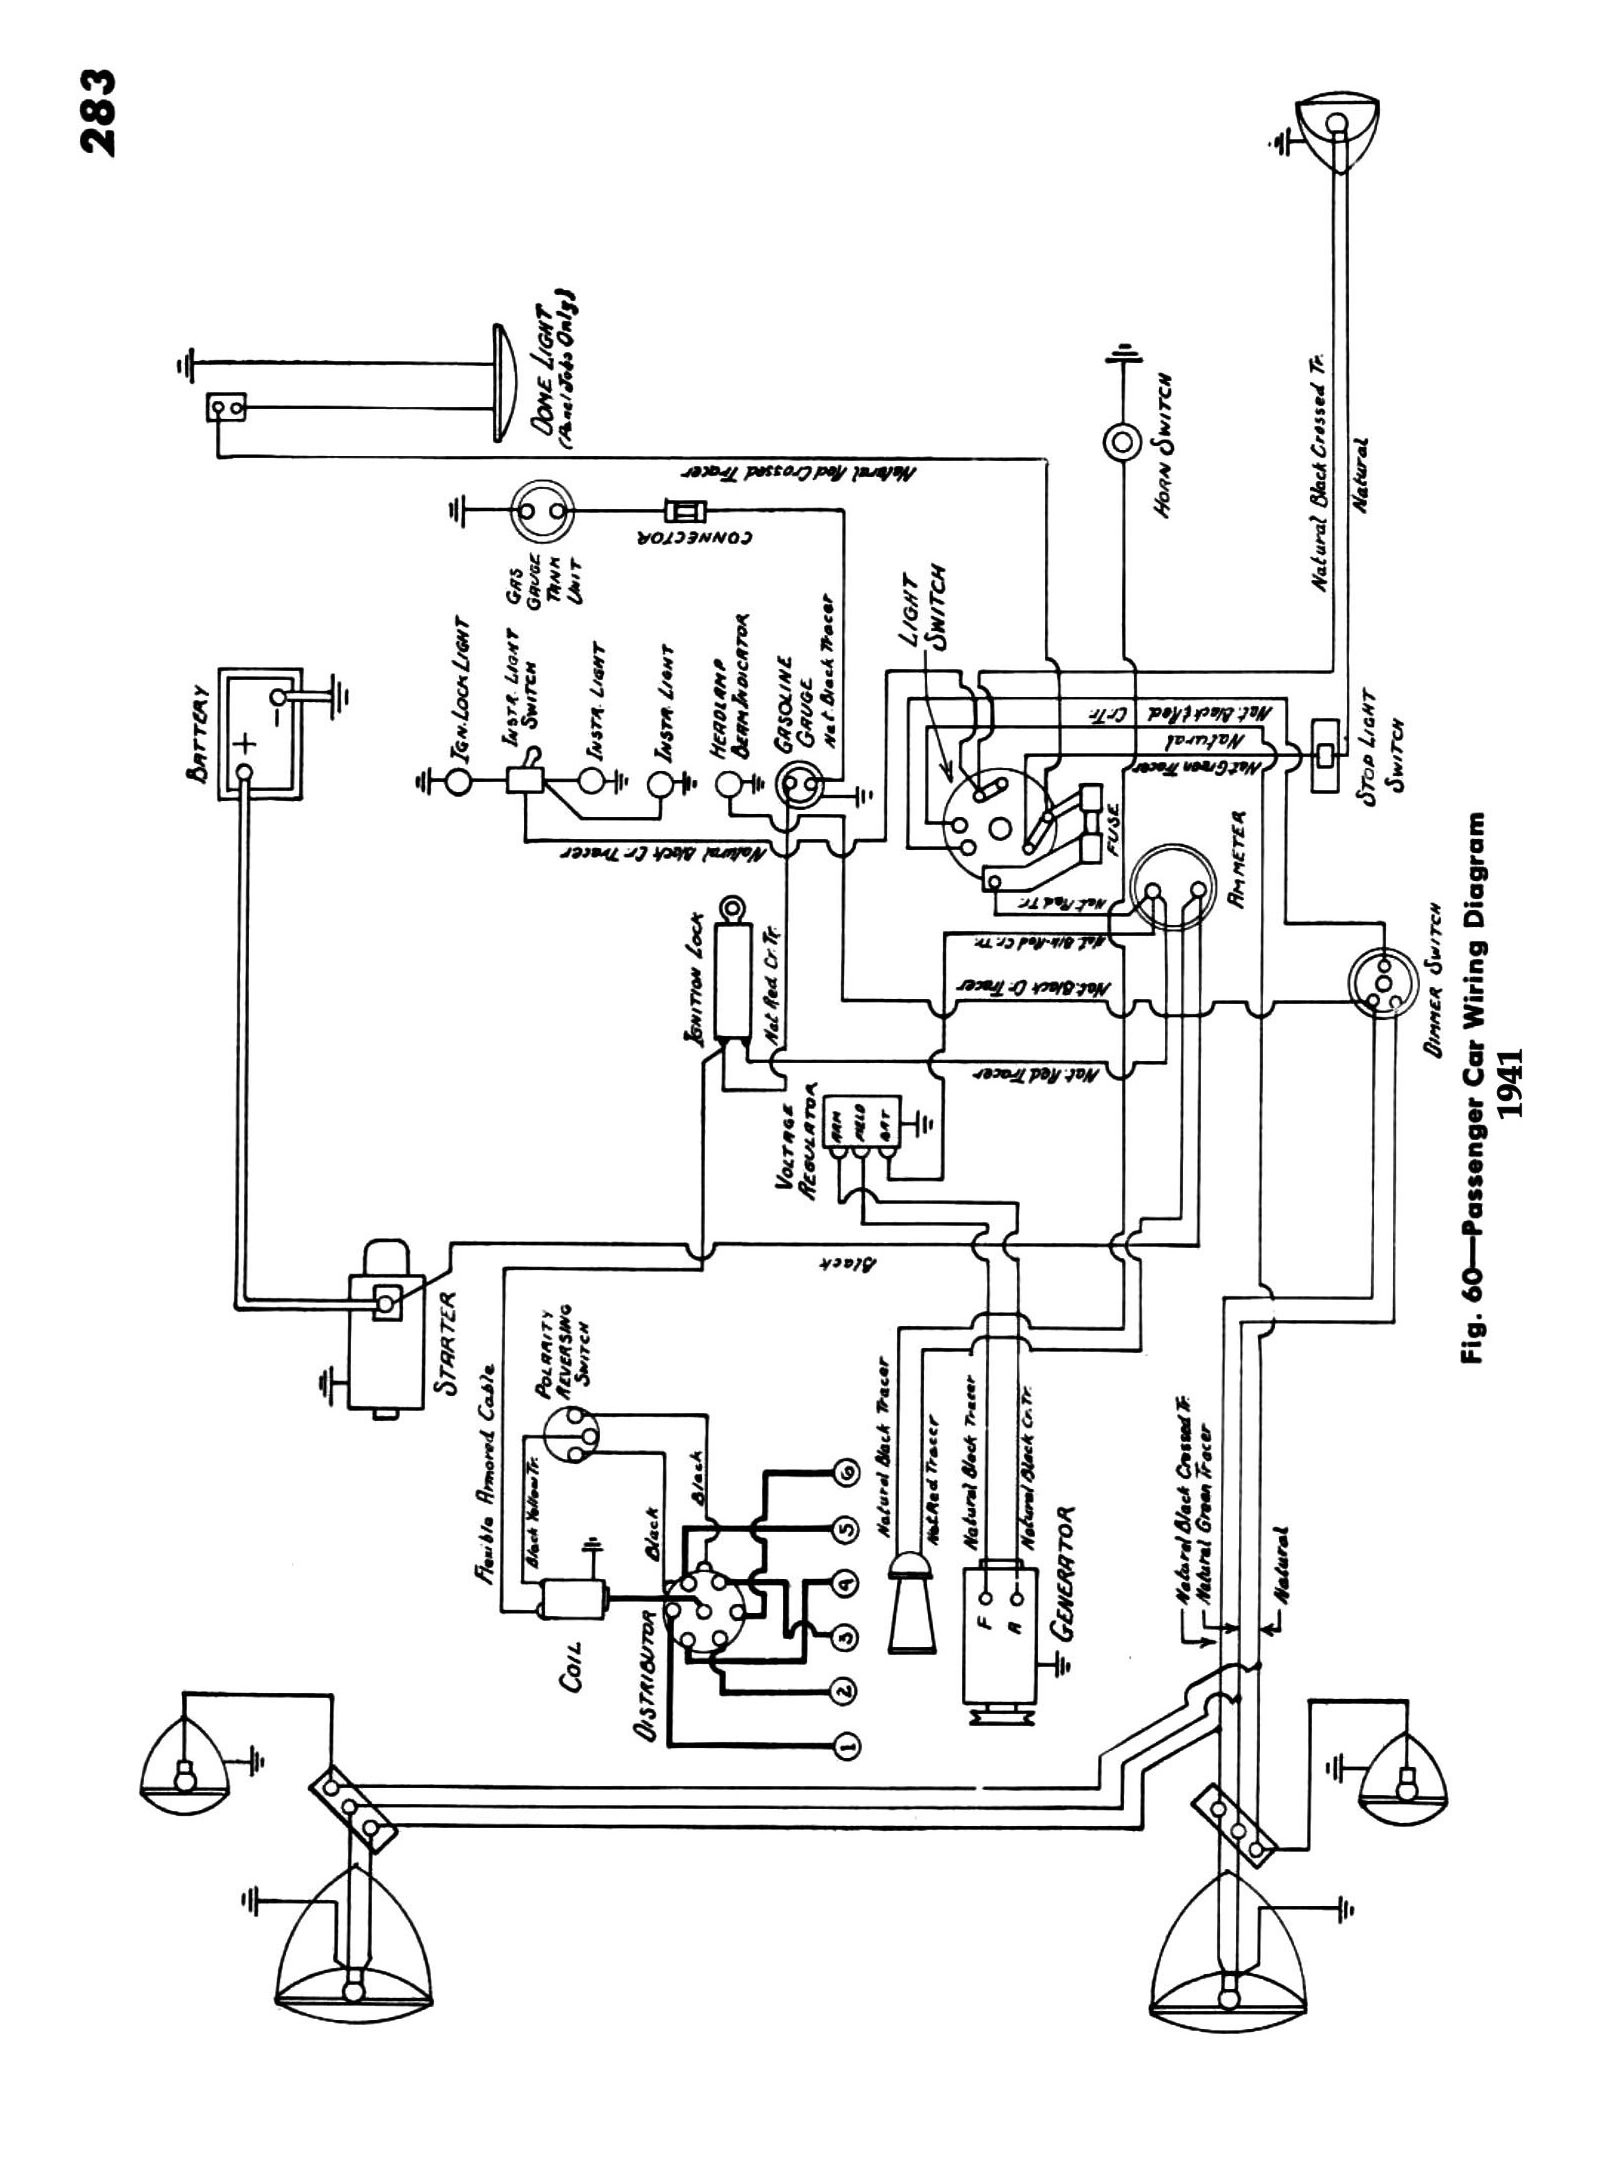 starter switch wiring diagram 2000 ford windstar diagrams chevy 1941 passenger car